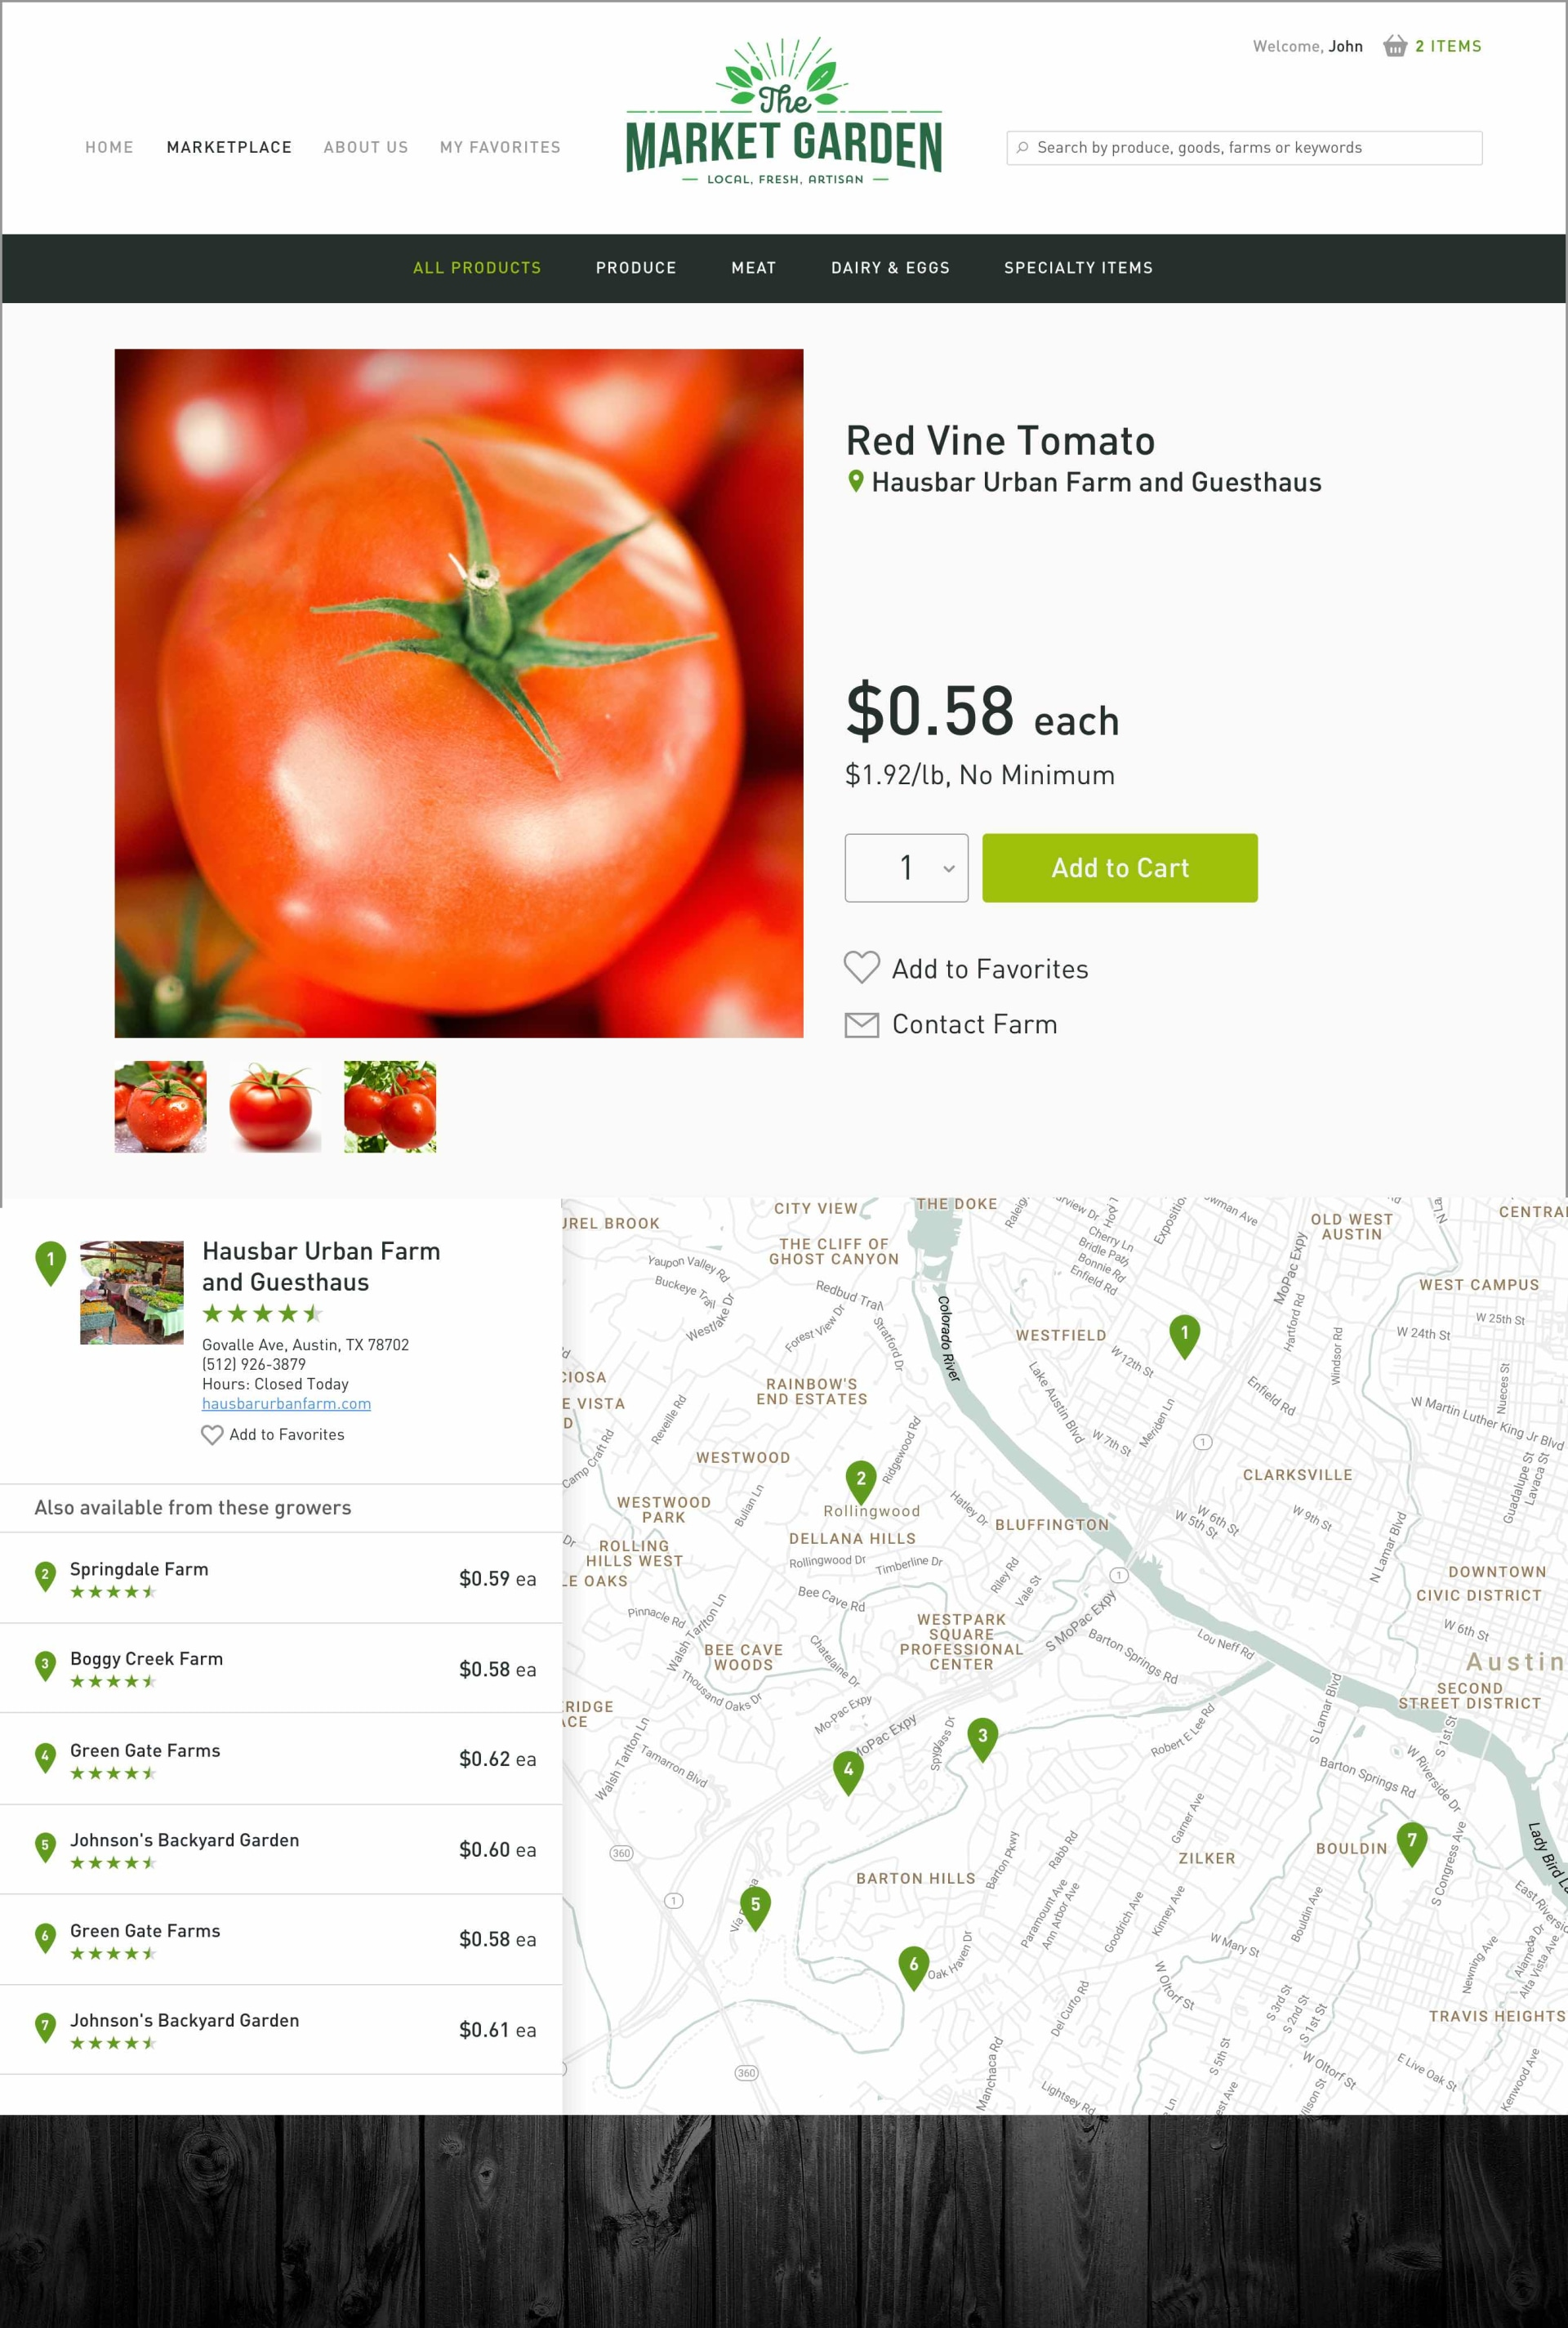 The Market Garden Specific Product Page